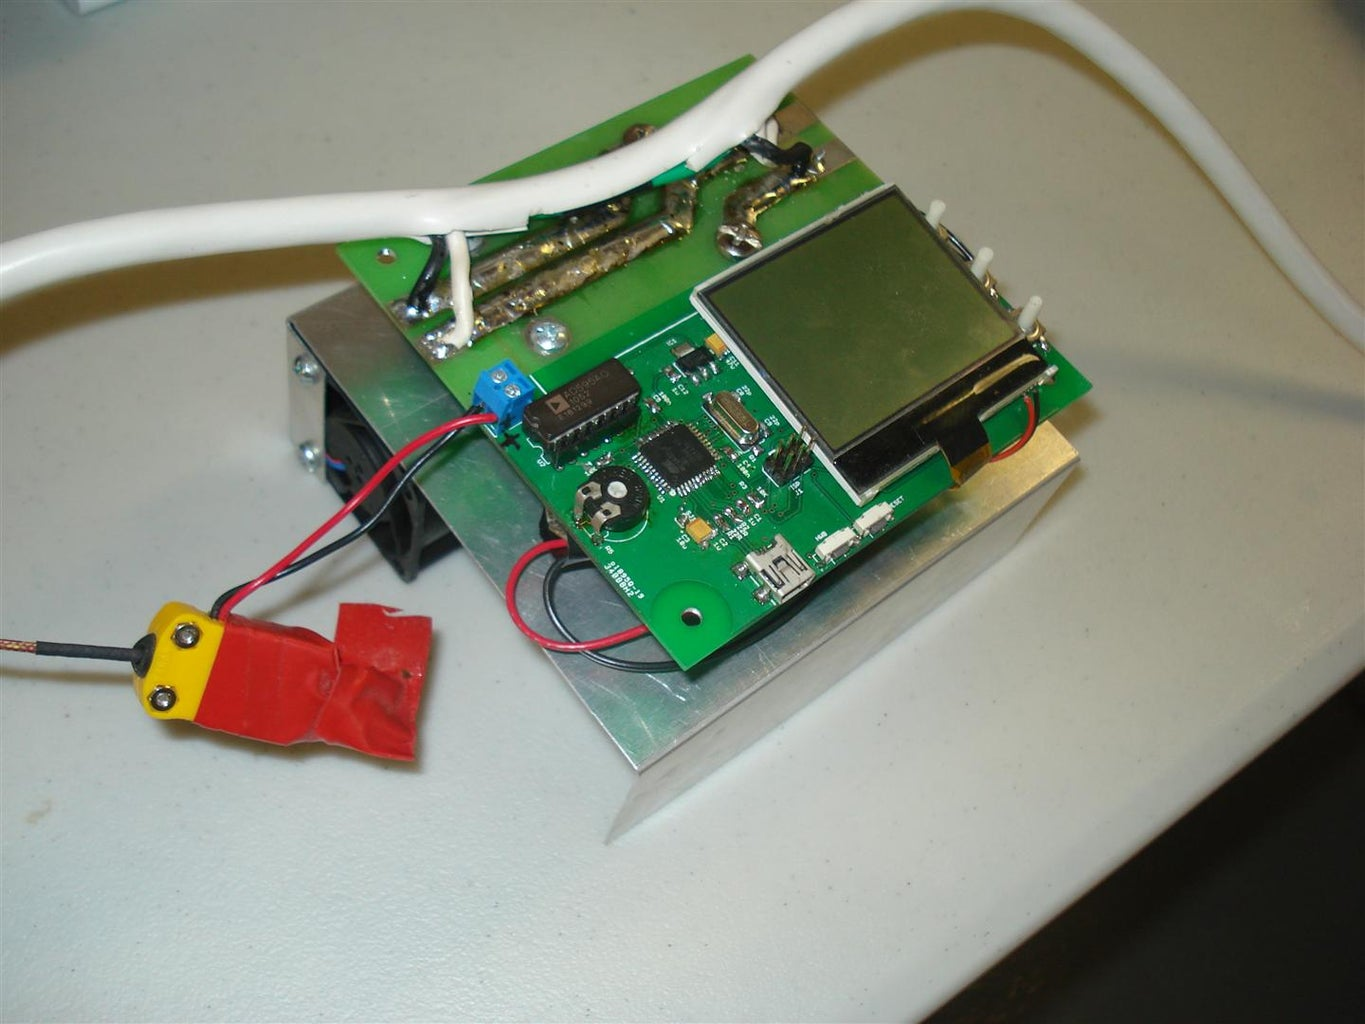 Final Circuit Assembly